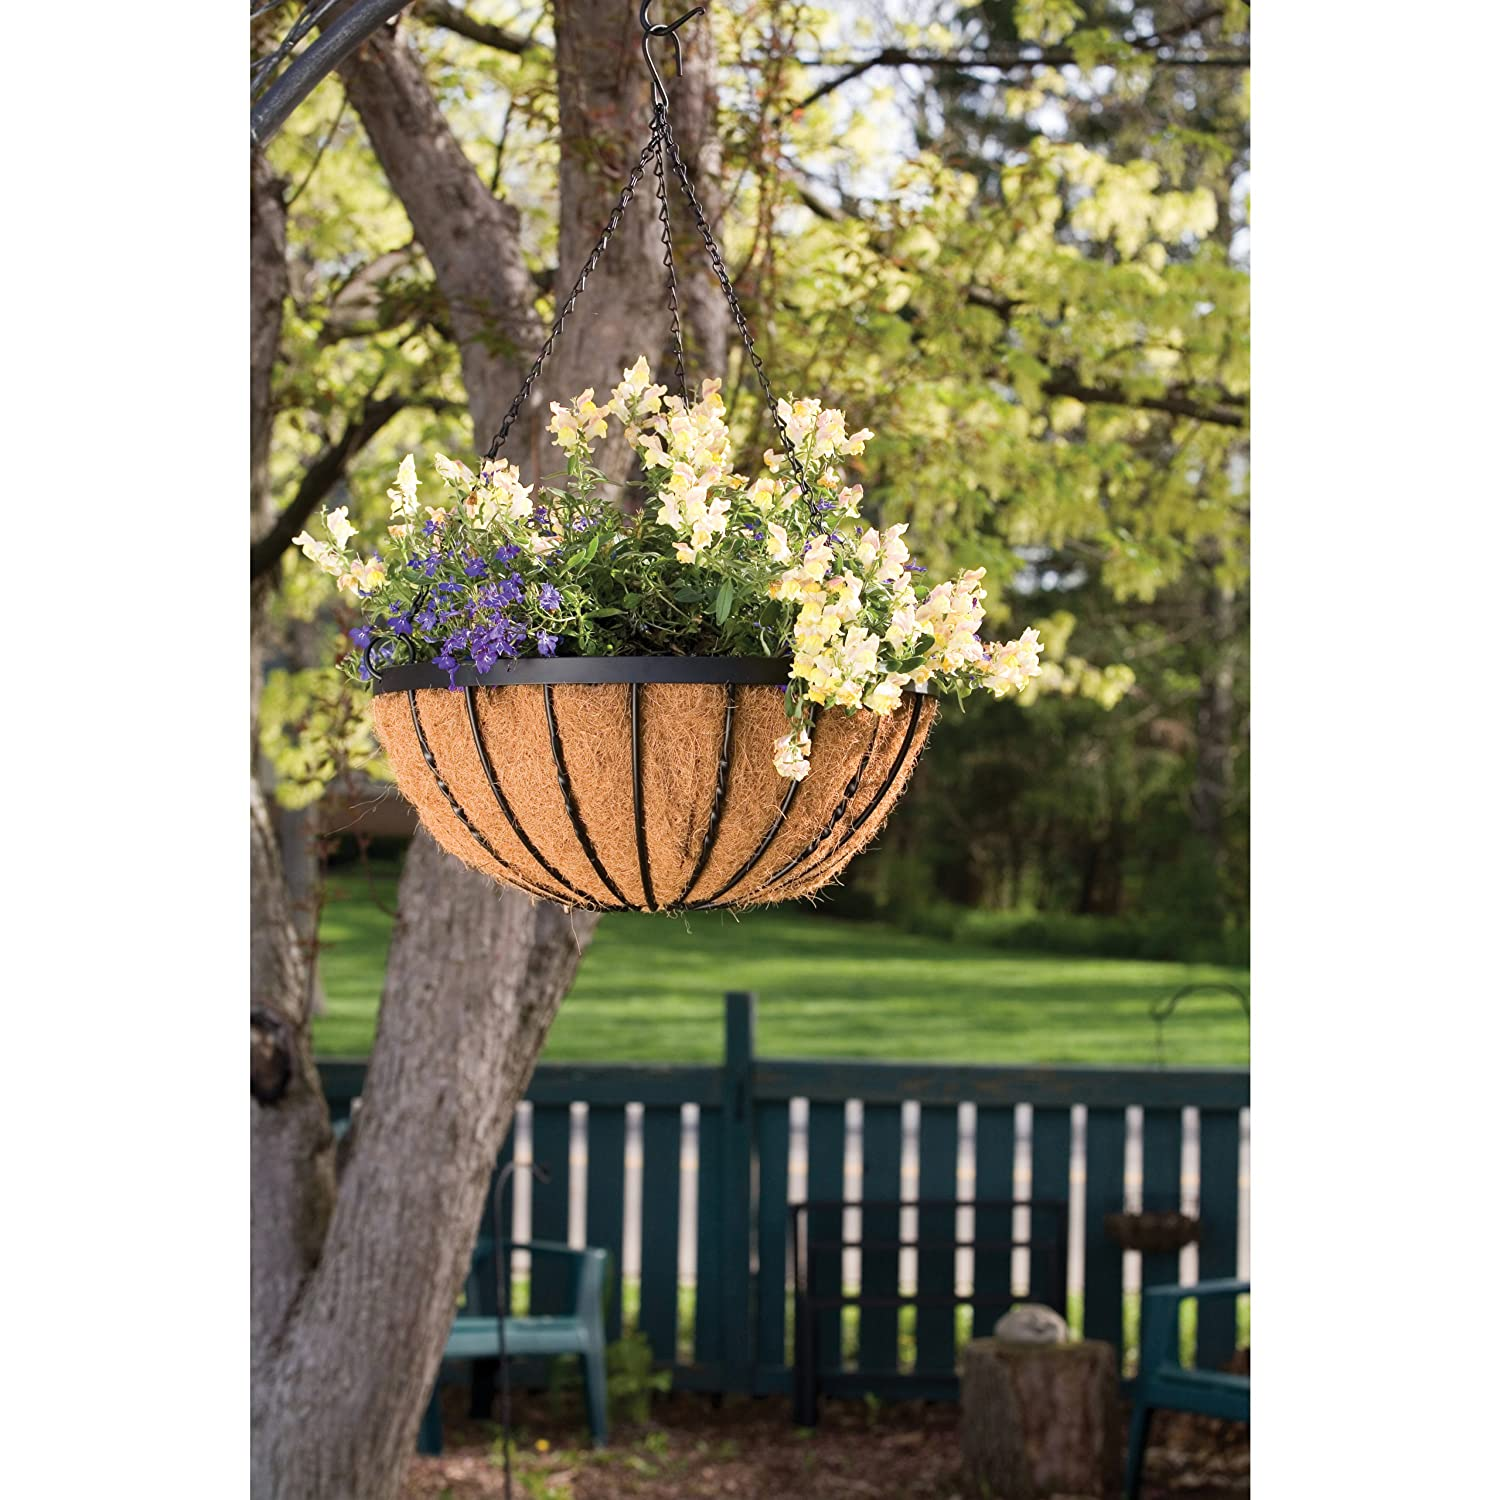 Panacea 88536 Cotsworld Series Hanging Basket with Liner, 18-Inch